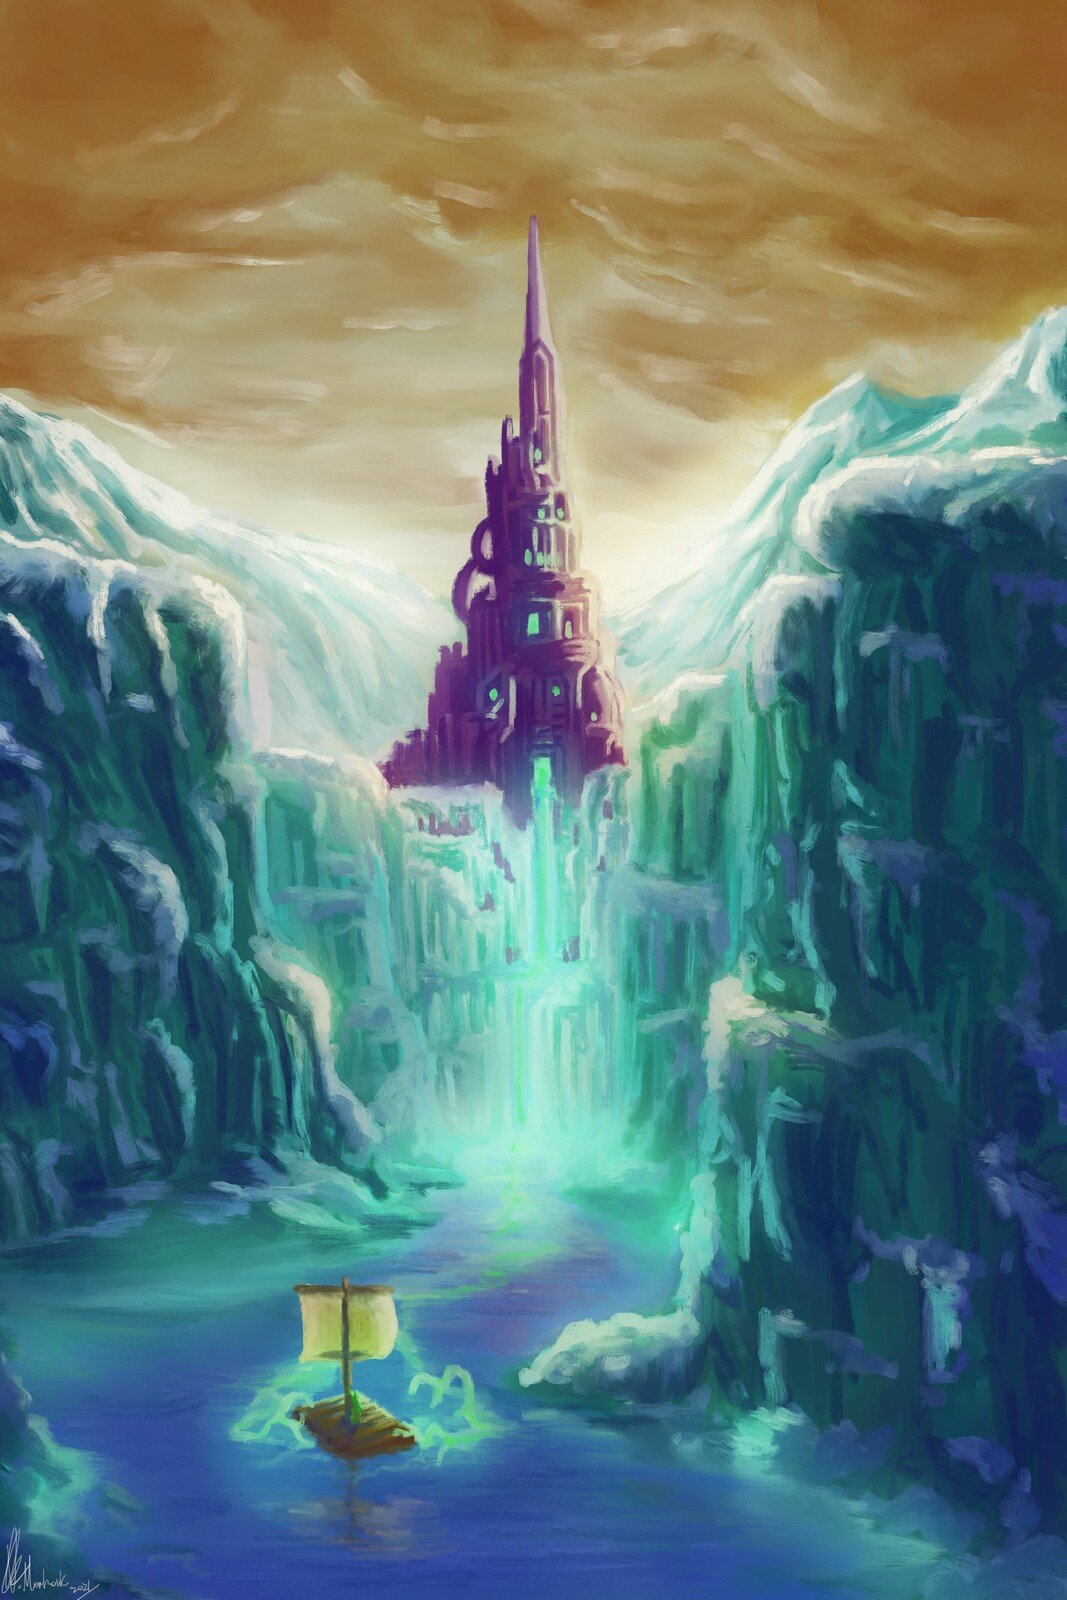 Home of the Arch Lich